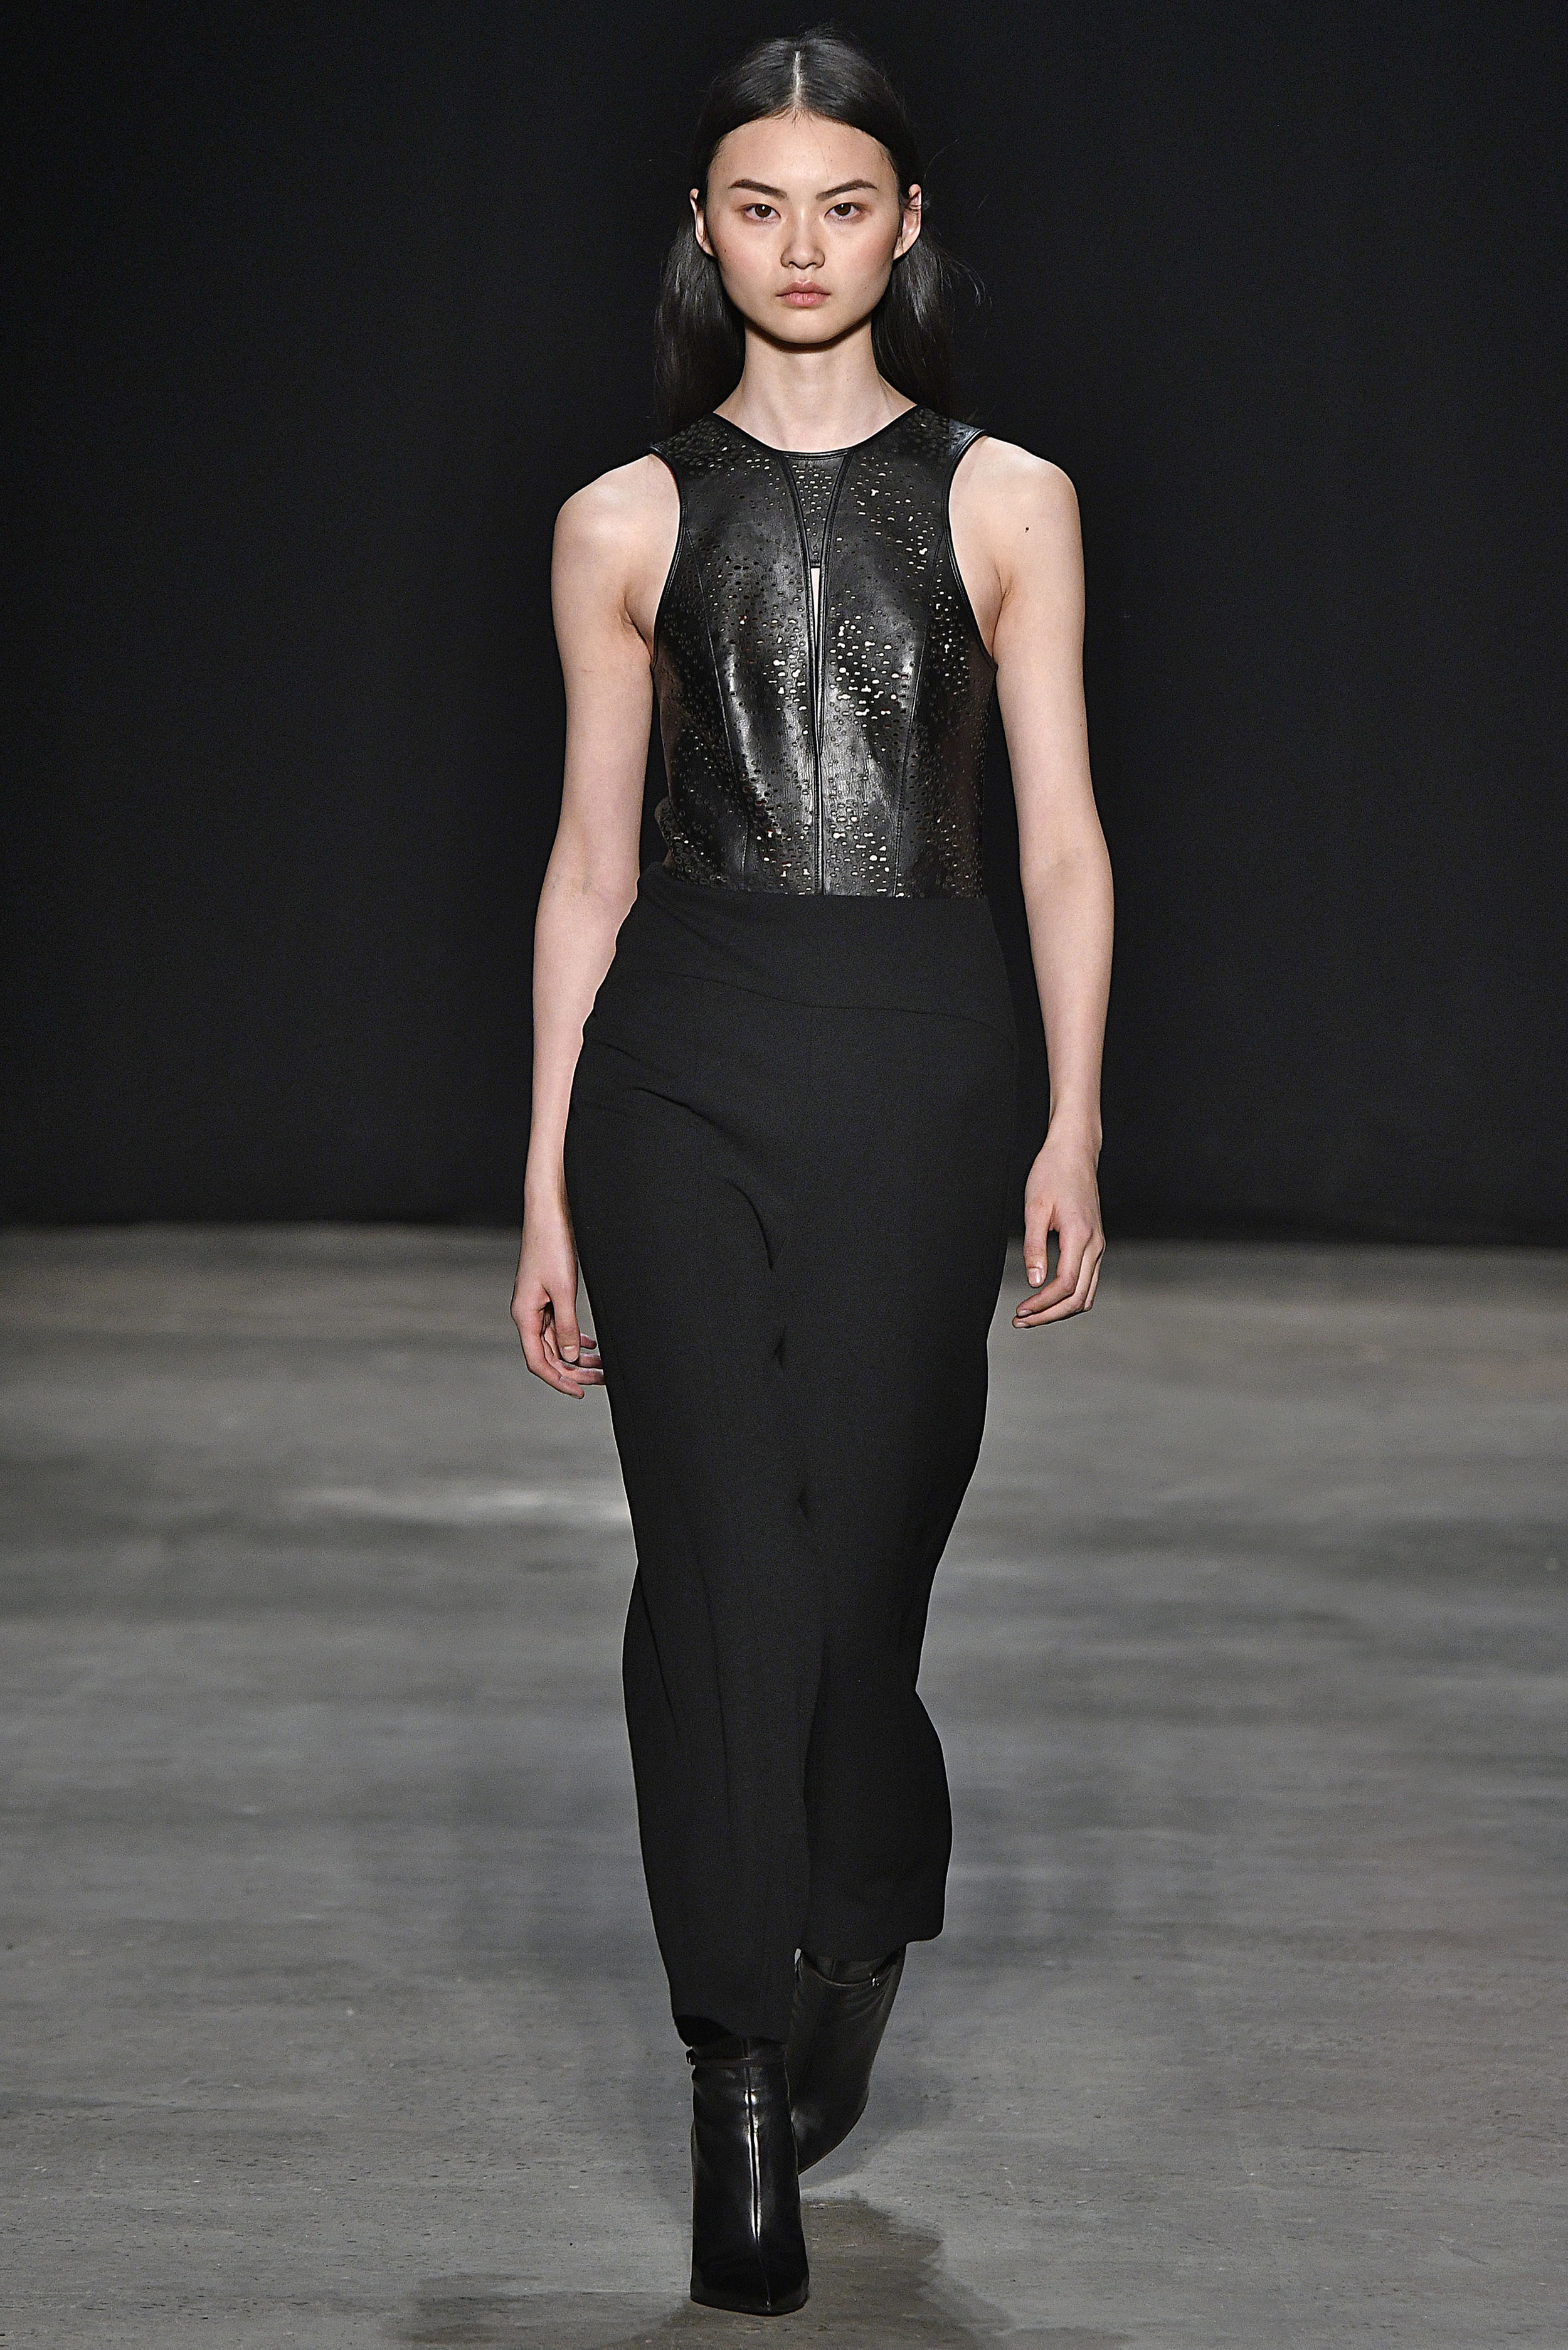 Narciso Rodriguez Fall 2017 collection. Black engraved leather/wool gauze jumpsuit.